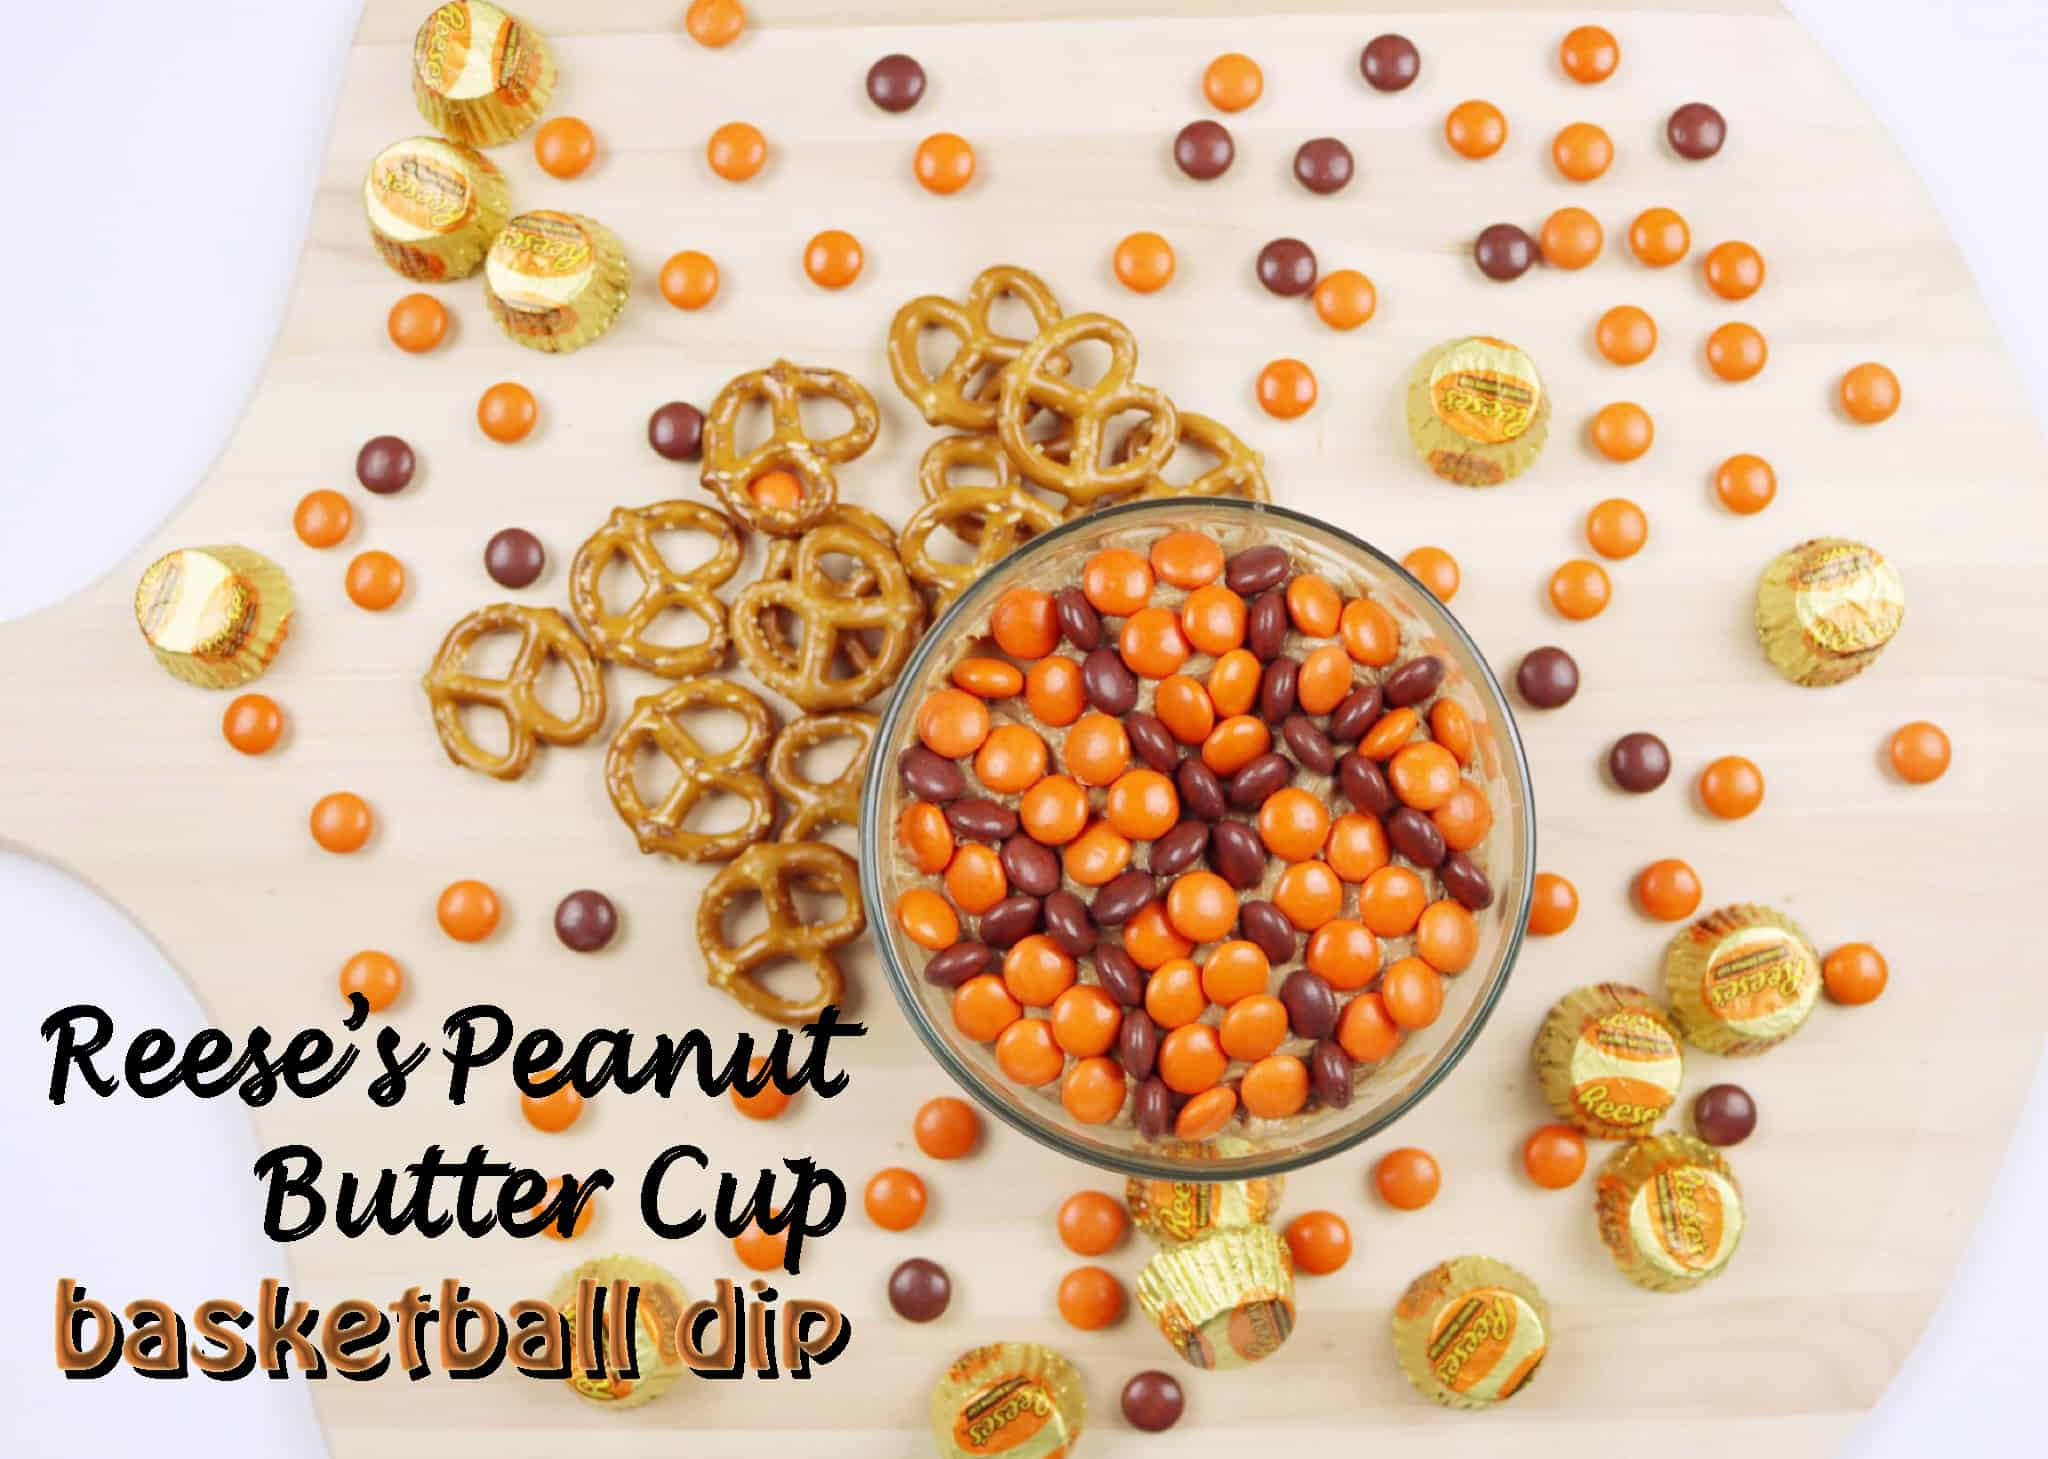 Reese's Peanut Butter Cup Dip